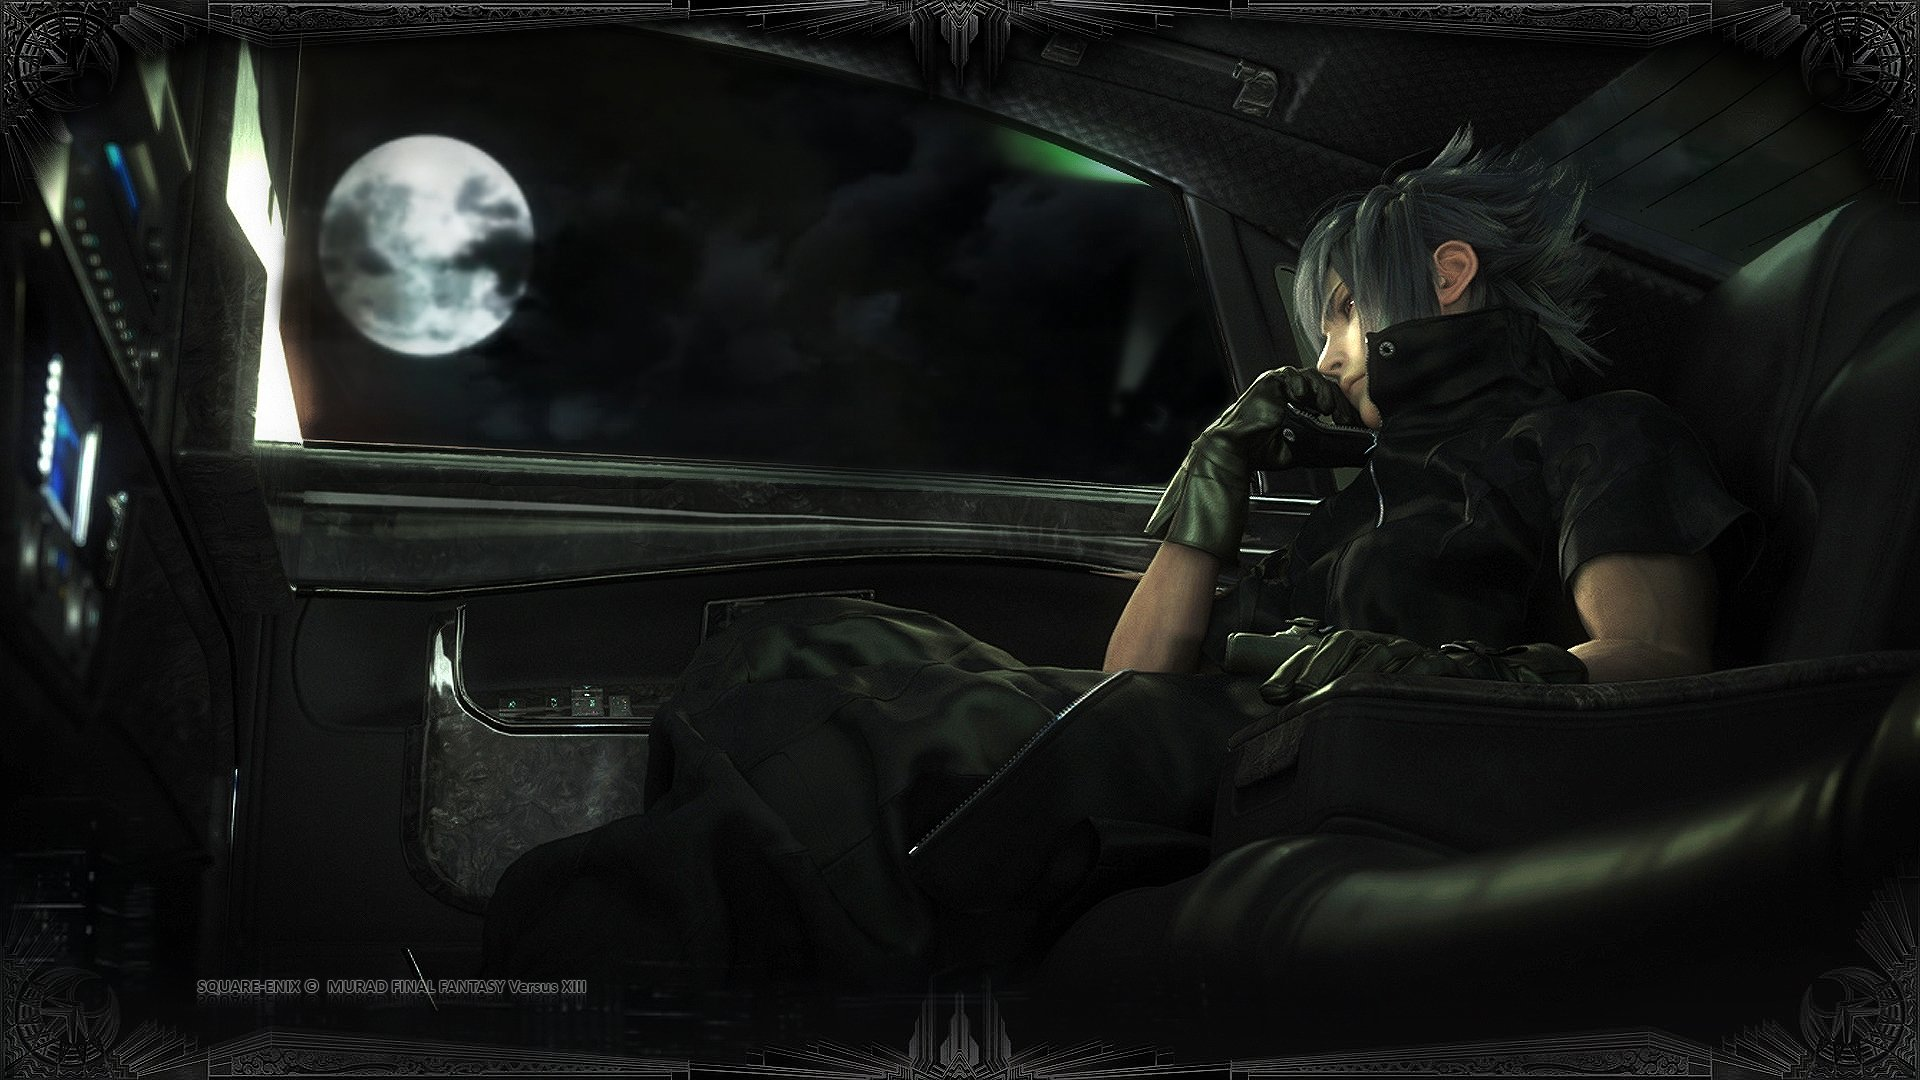 17 Final Fantasy Versus Xiii Hd Wallpapers Background Images